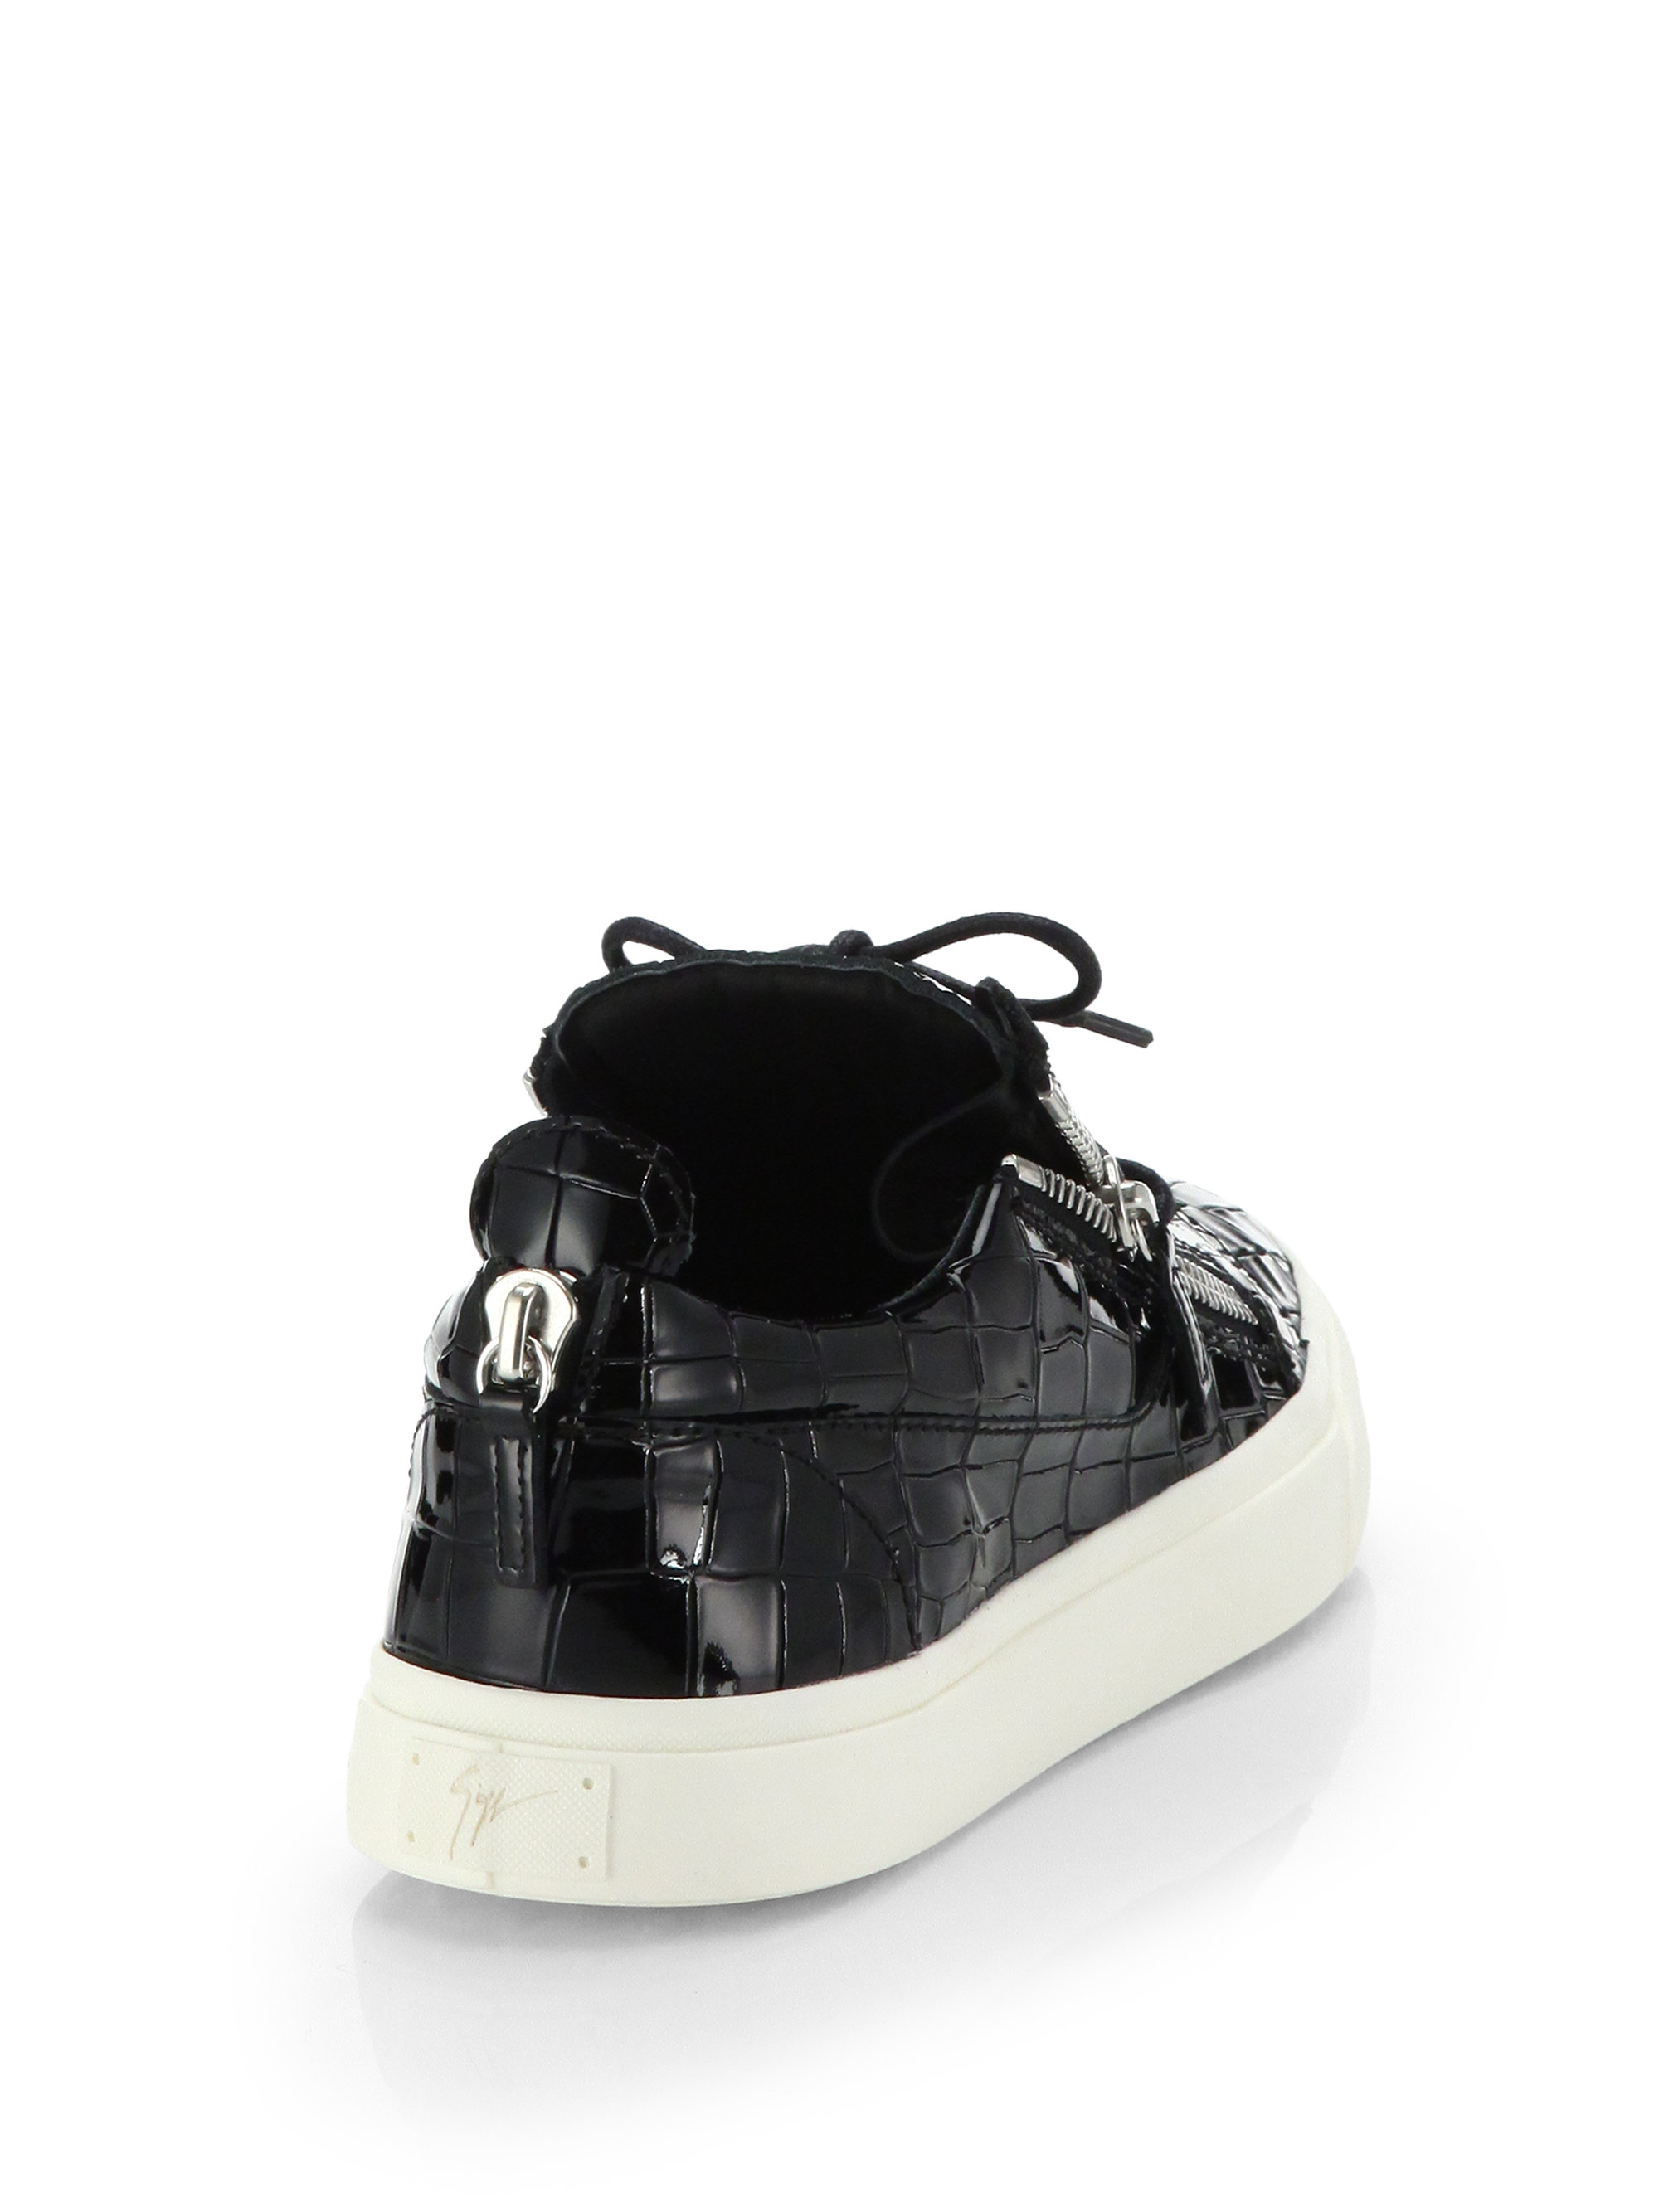 Giuseppe ZanottiPatent Frankie sneakers GuwPMT